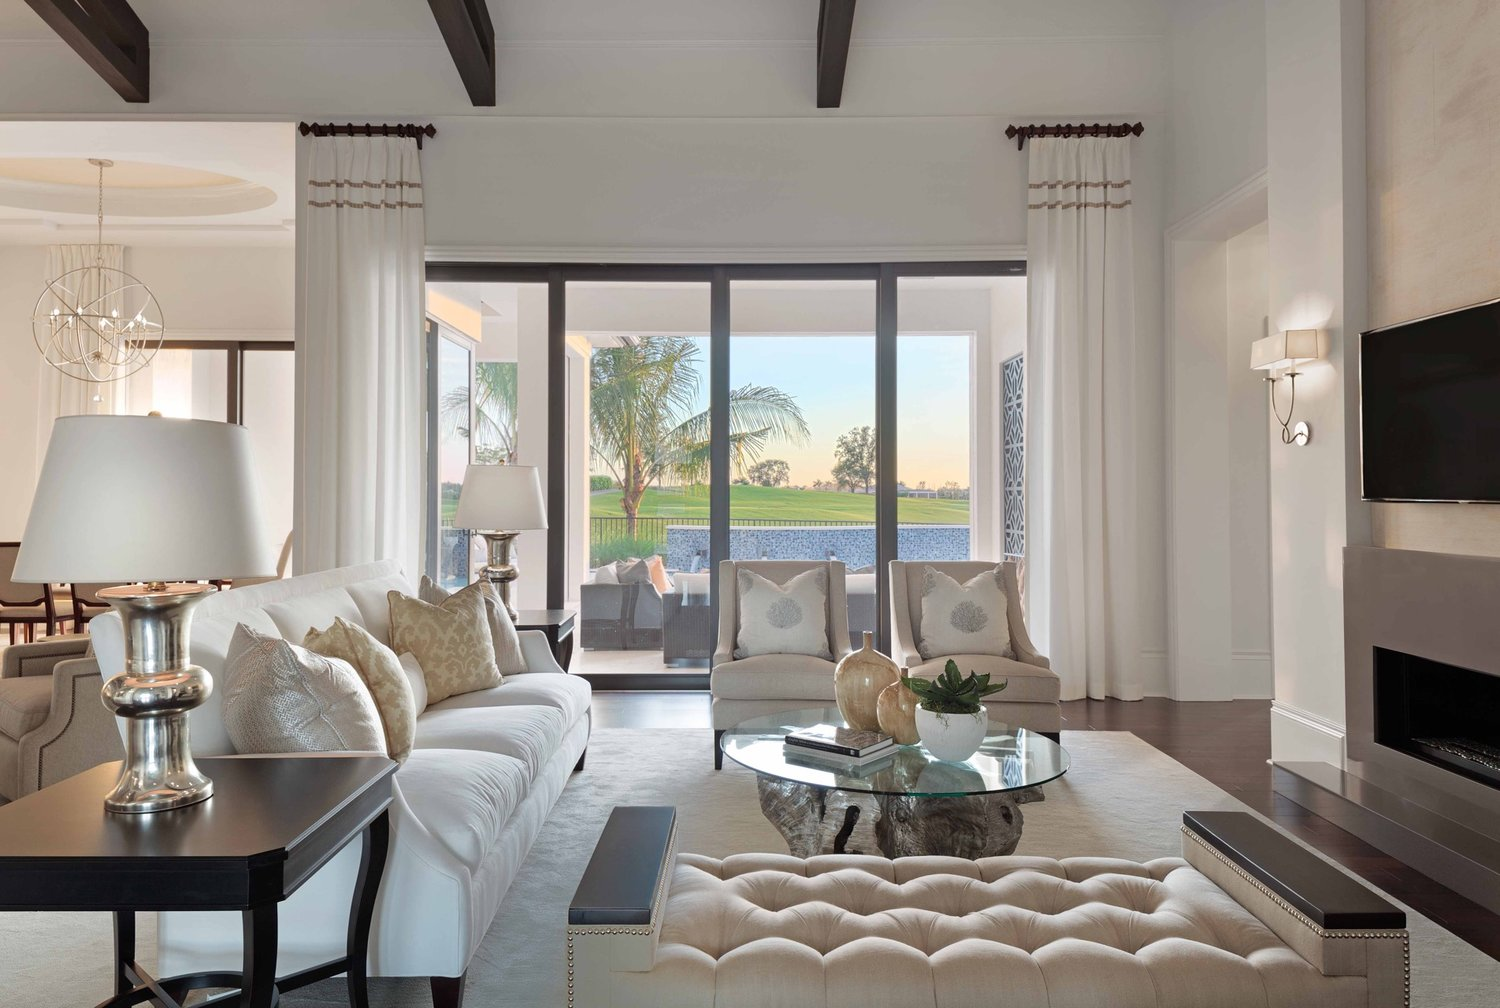 Soco Interiors on boise idaho home designs, new orleans home designs, florida waterfront home designs, seaside florida home designs, cape coral home designs, palm beach home designs, key west florida home designs, salem oregon home designs, new jersey home designs,